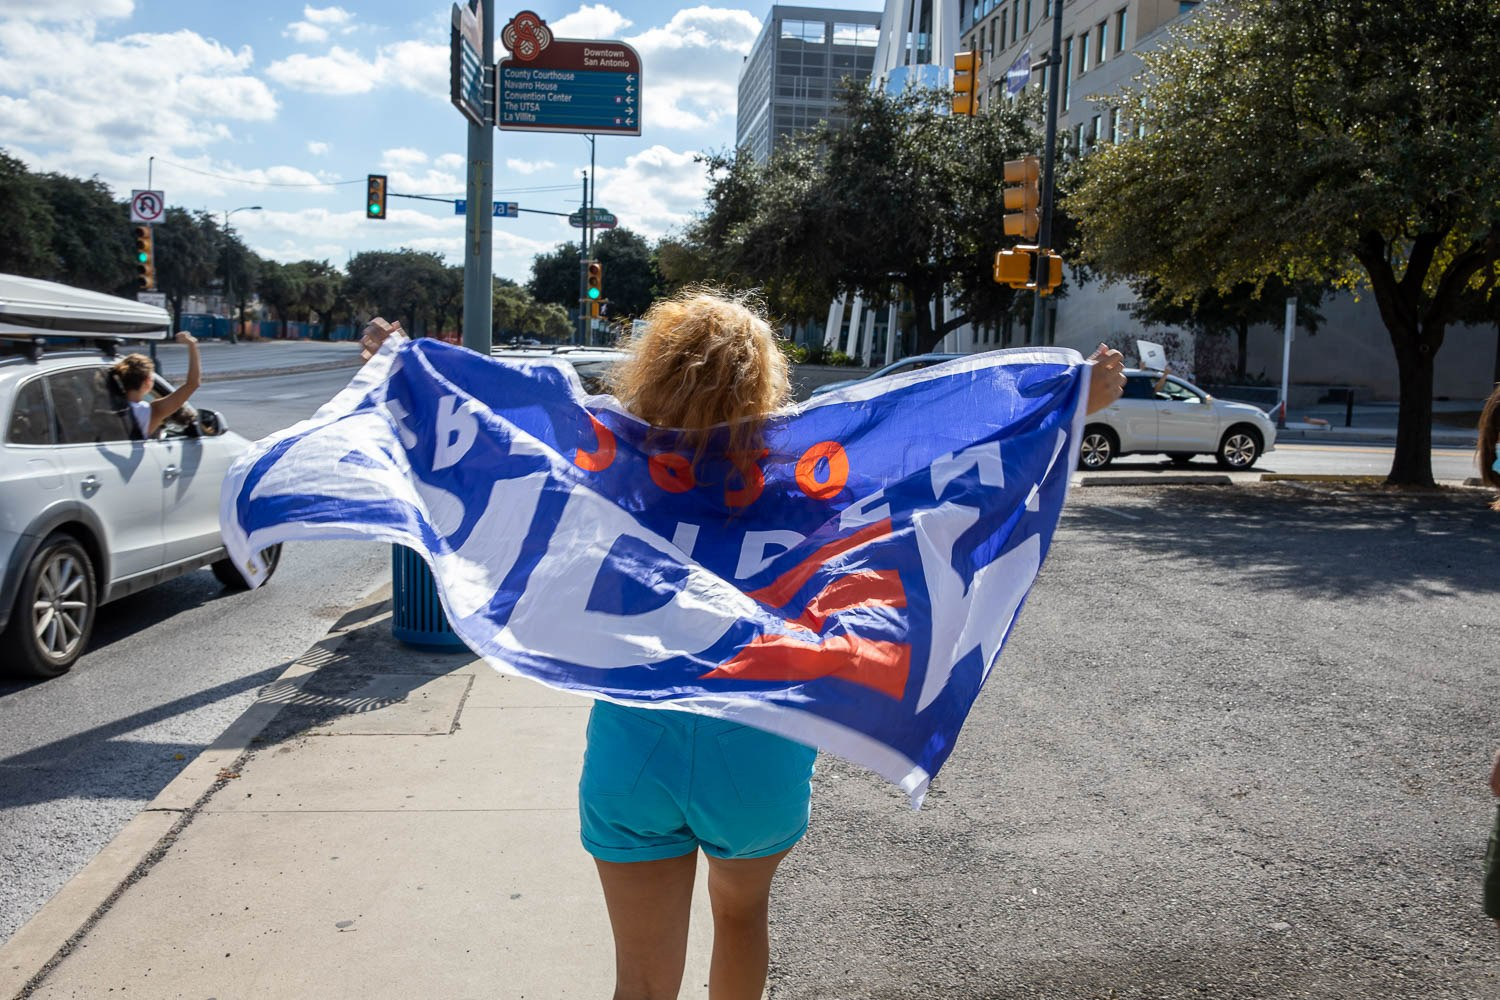 Jasmine Calvo, 17 walks with a President Biden flag along side the caravan celebrating the President-elect Joe Biden and Kamala Harris's win on November 7, 2020. Photo by Stephanie Marquez | Heron contributor